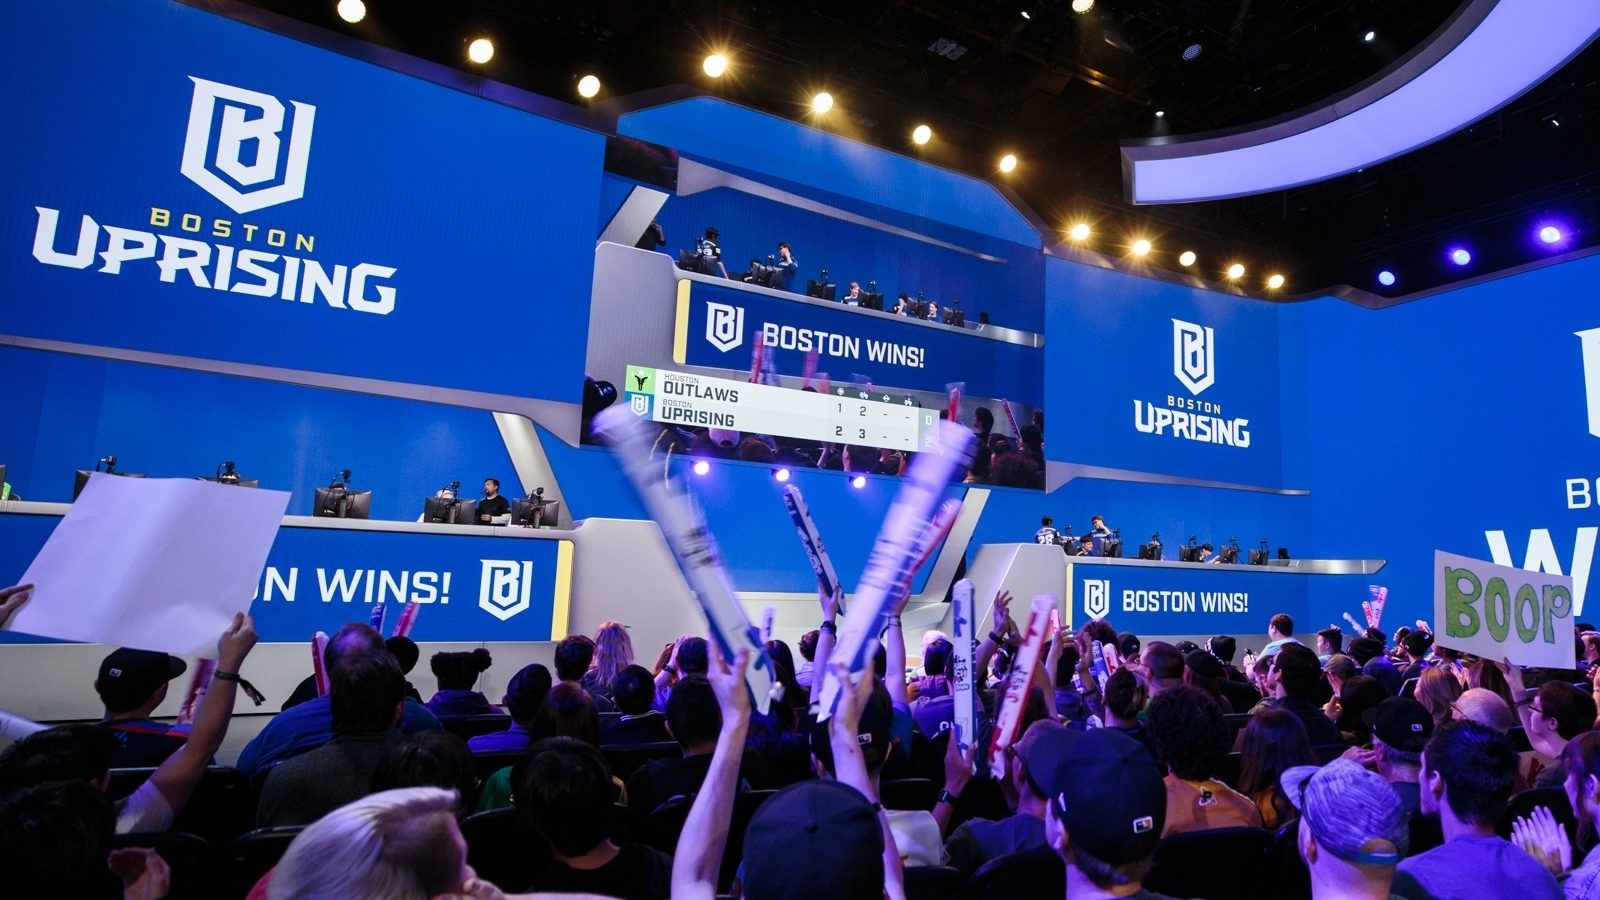 Boston Uprising Release Crusty From Coaching Staff